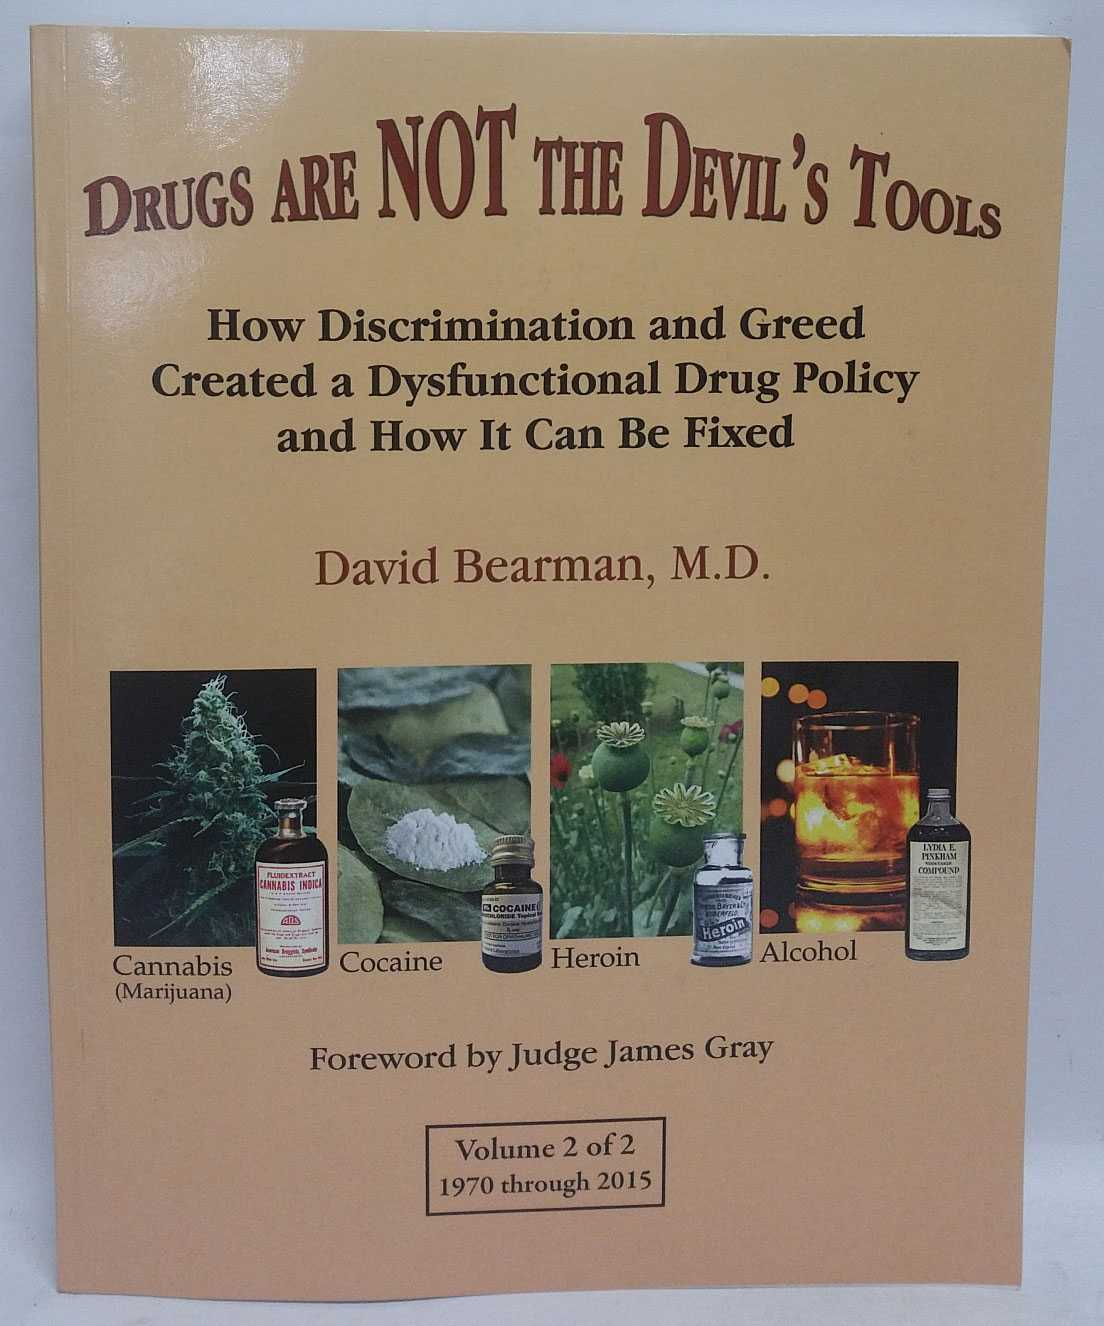 Drugs Are Not The Devil's Tools (Volume 2), David Bearman